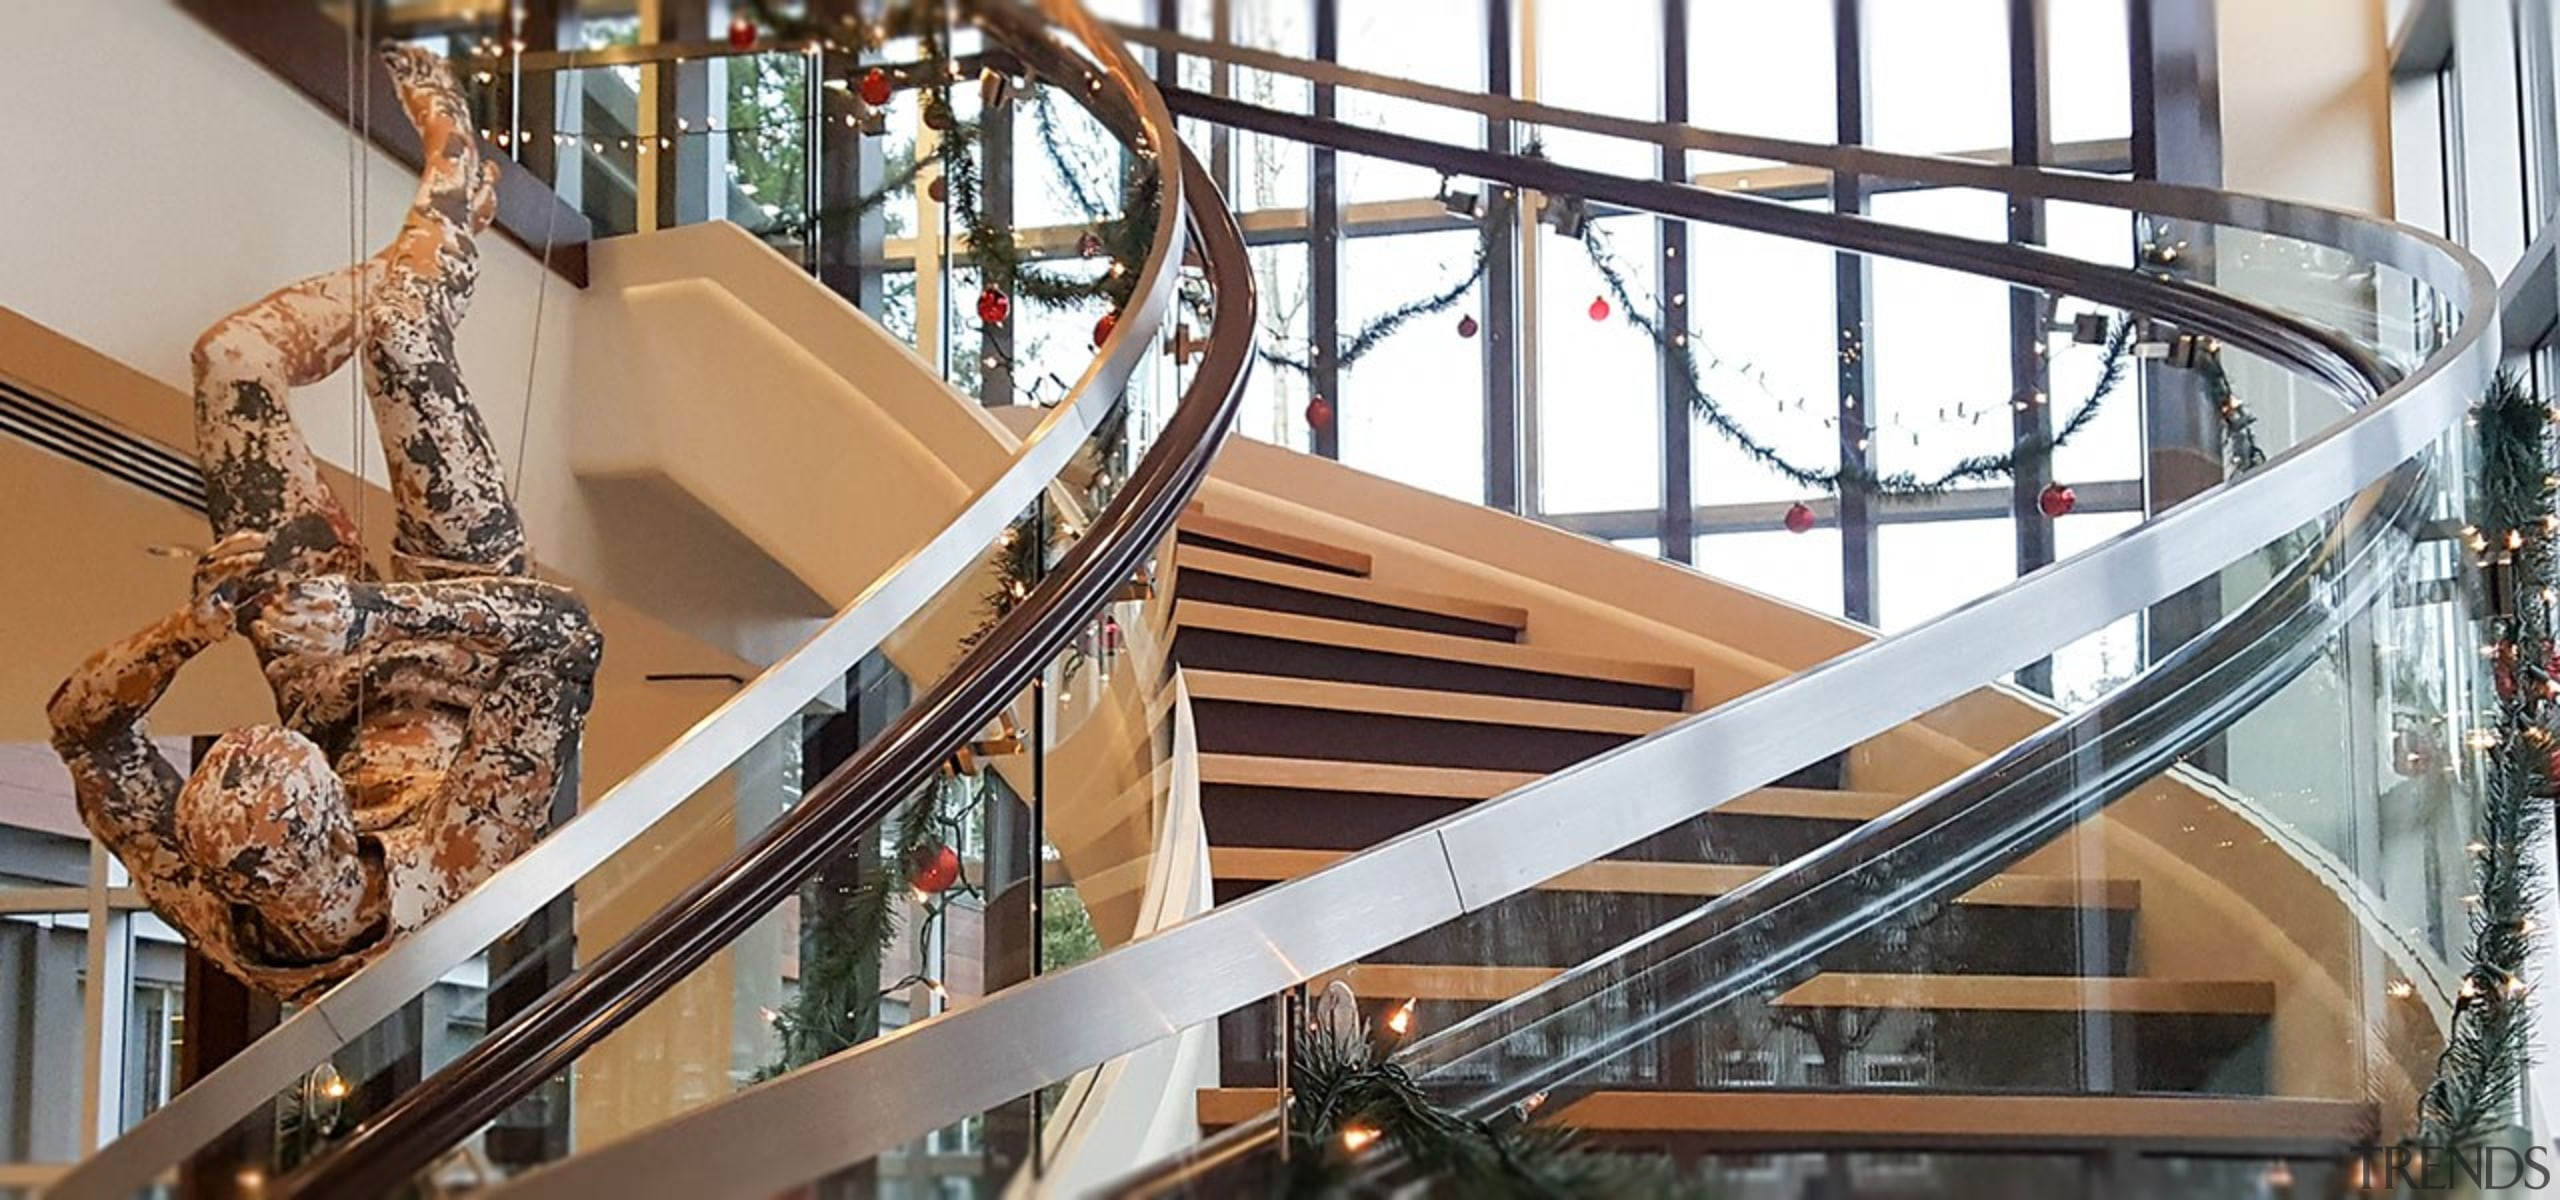 Aegis Living 01 - architecture   baluster   architecture, baluster, building, daylighting, handrail, iron, metal, stairs, steel, wood, white